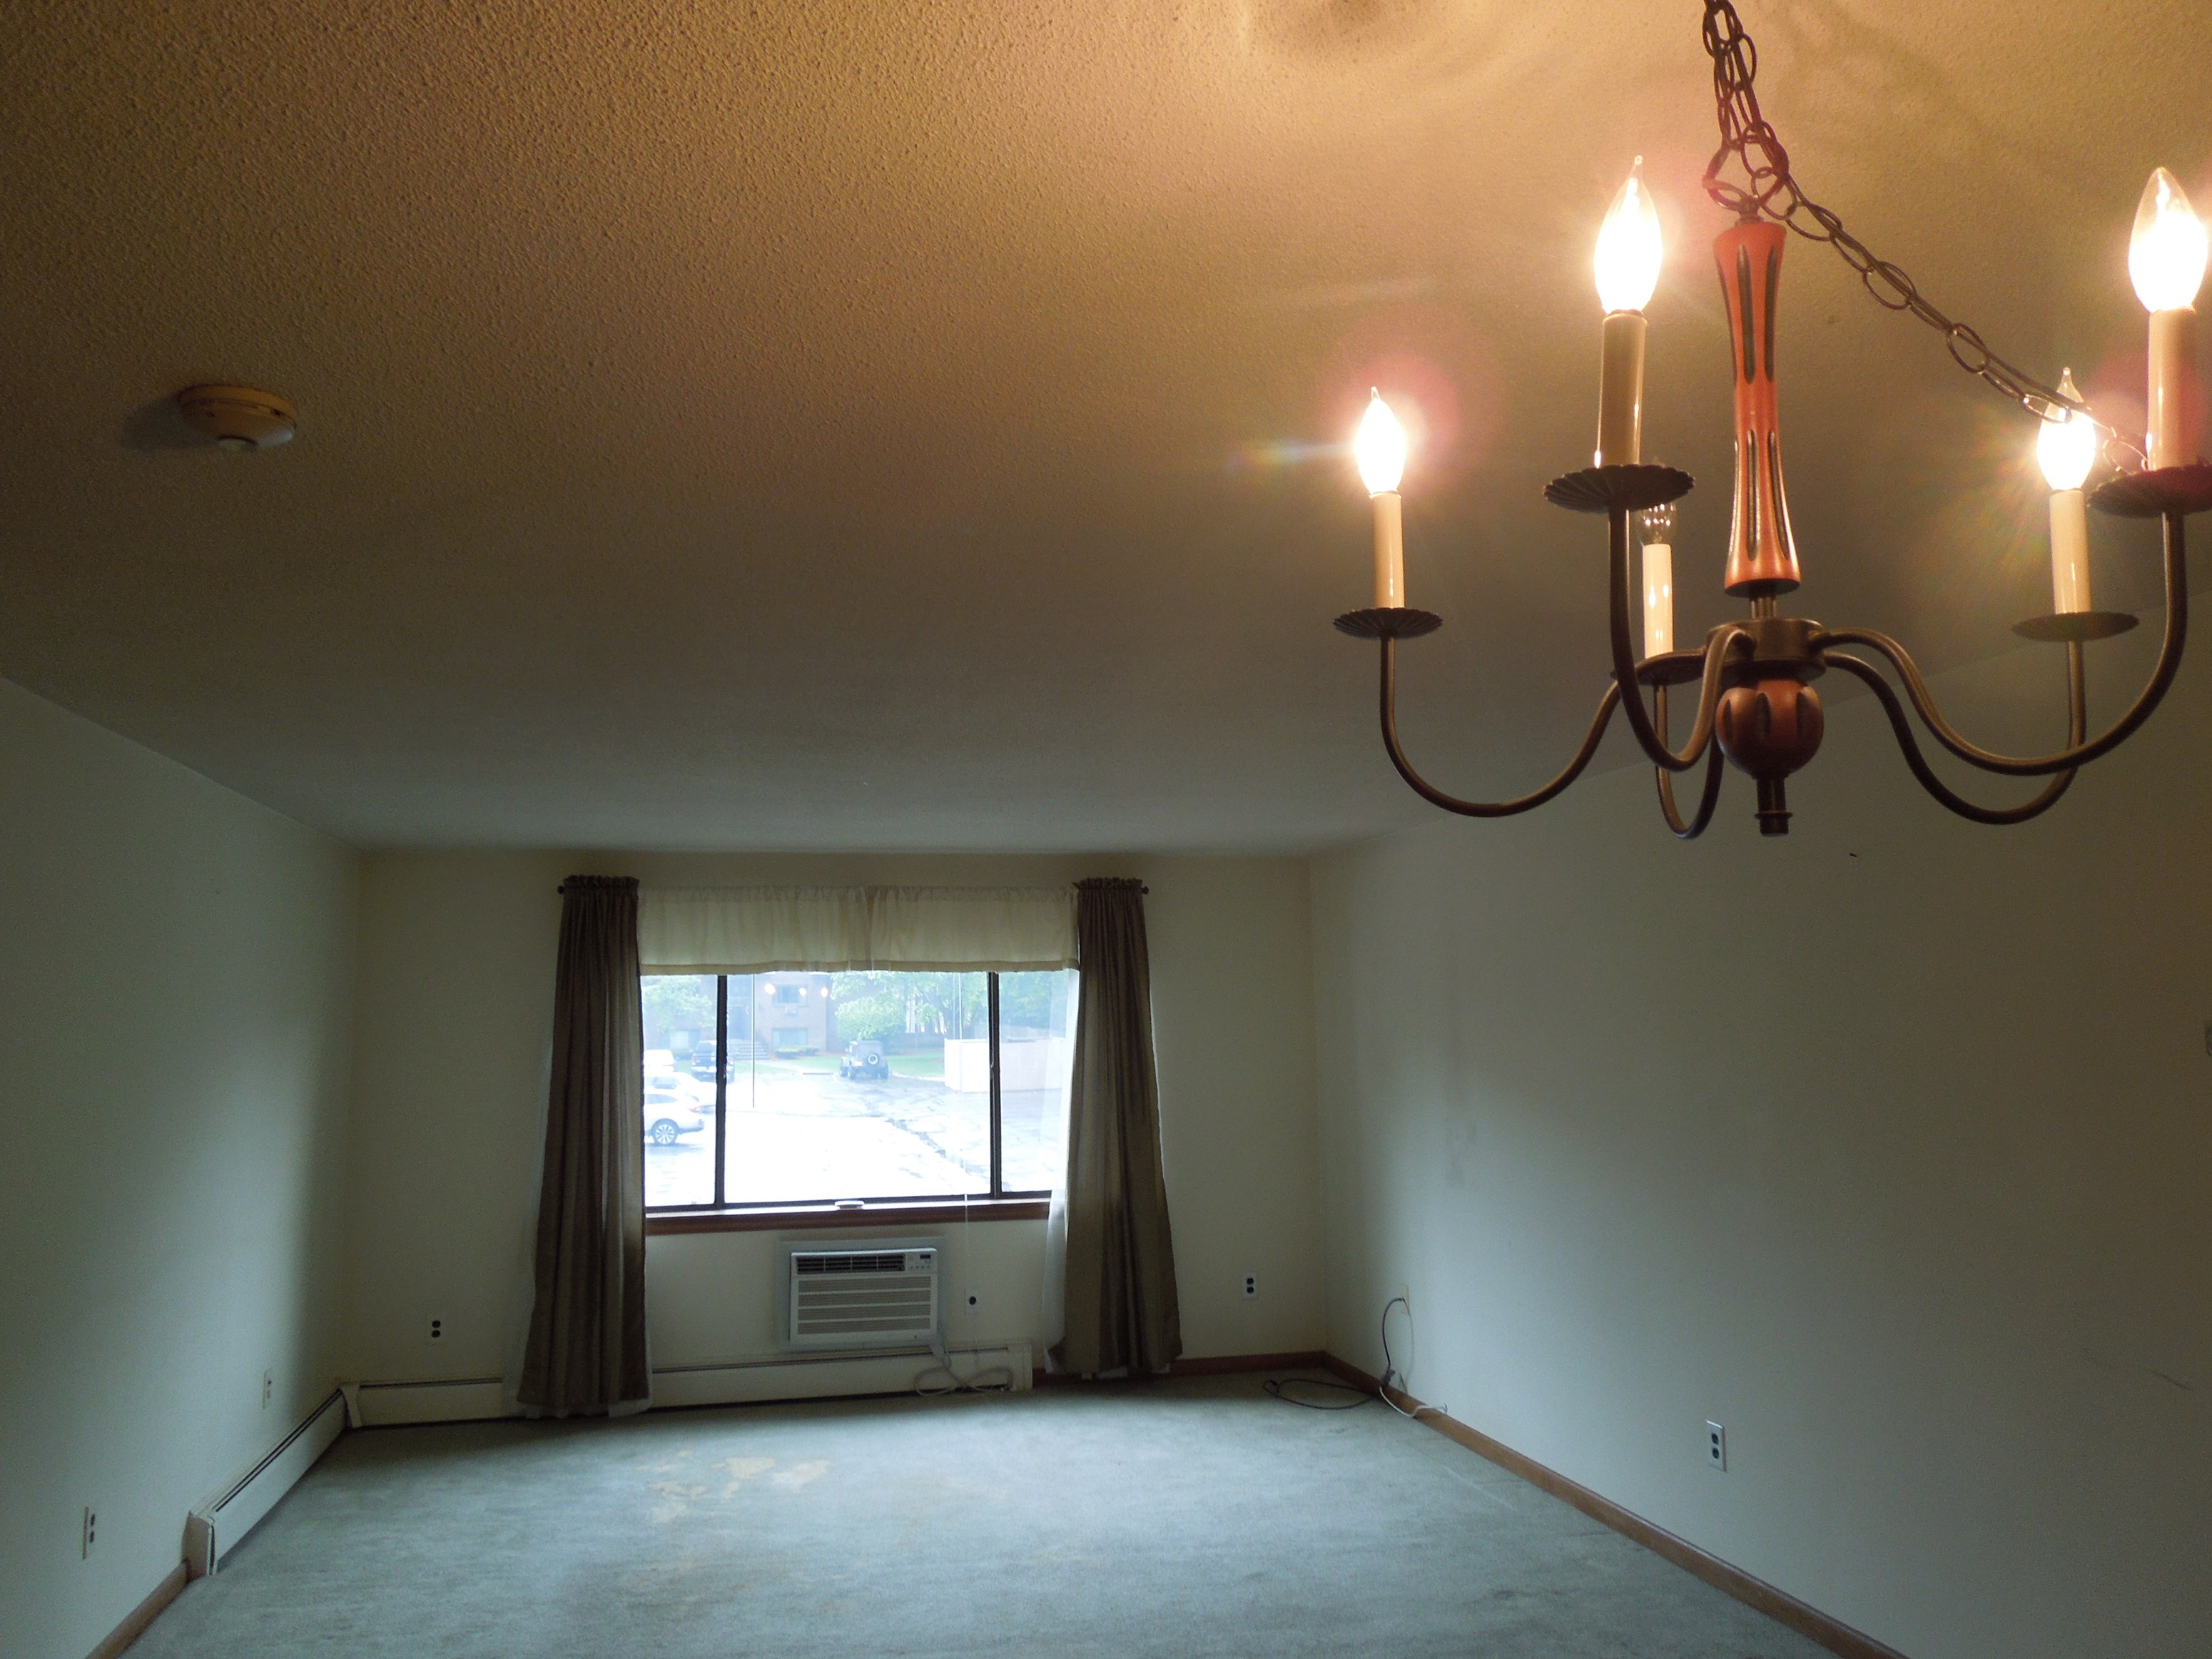 Rooms for Rent Norwood, MA – Apartments, House, Commercial